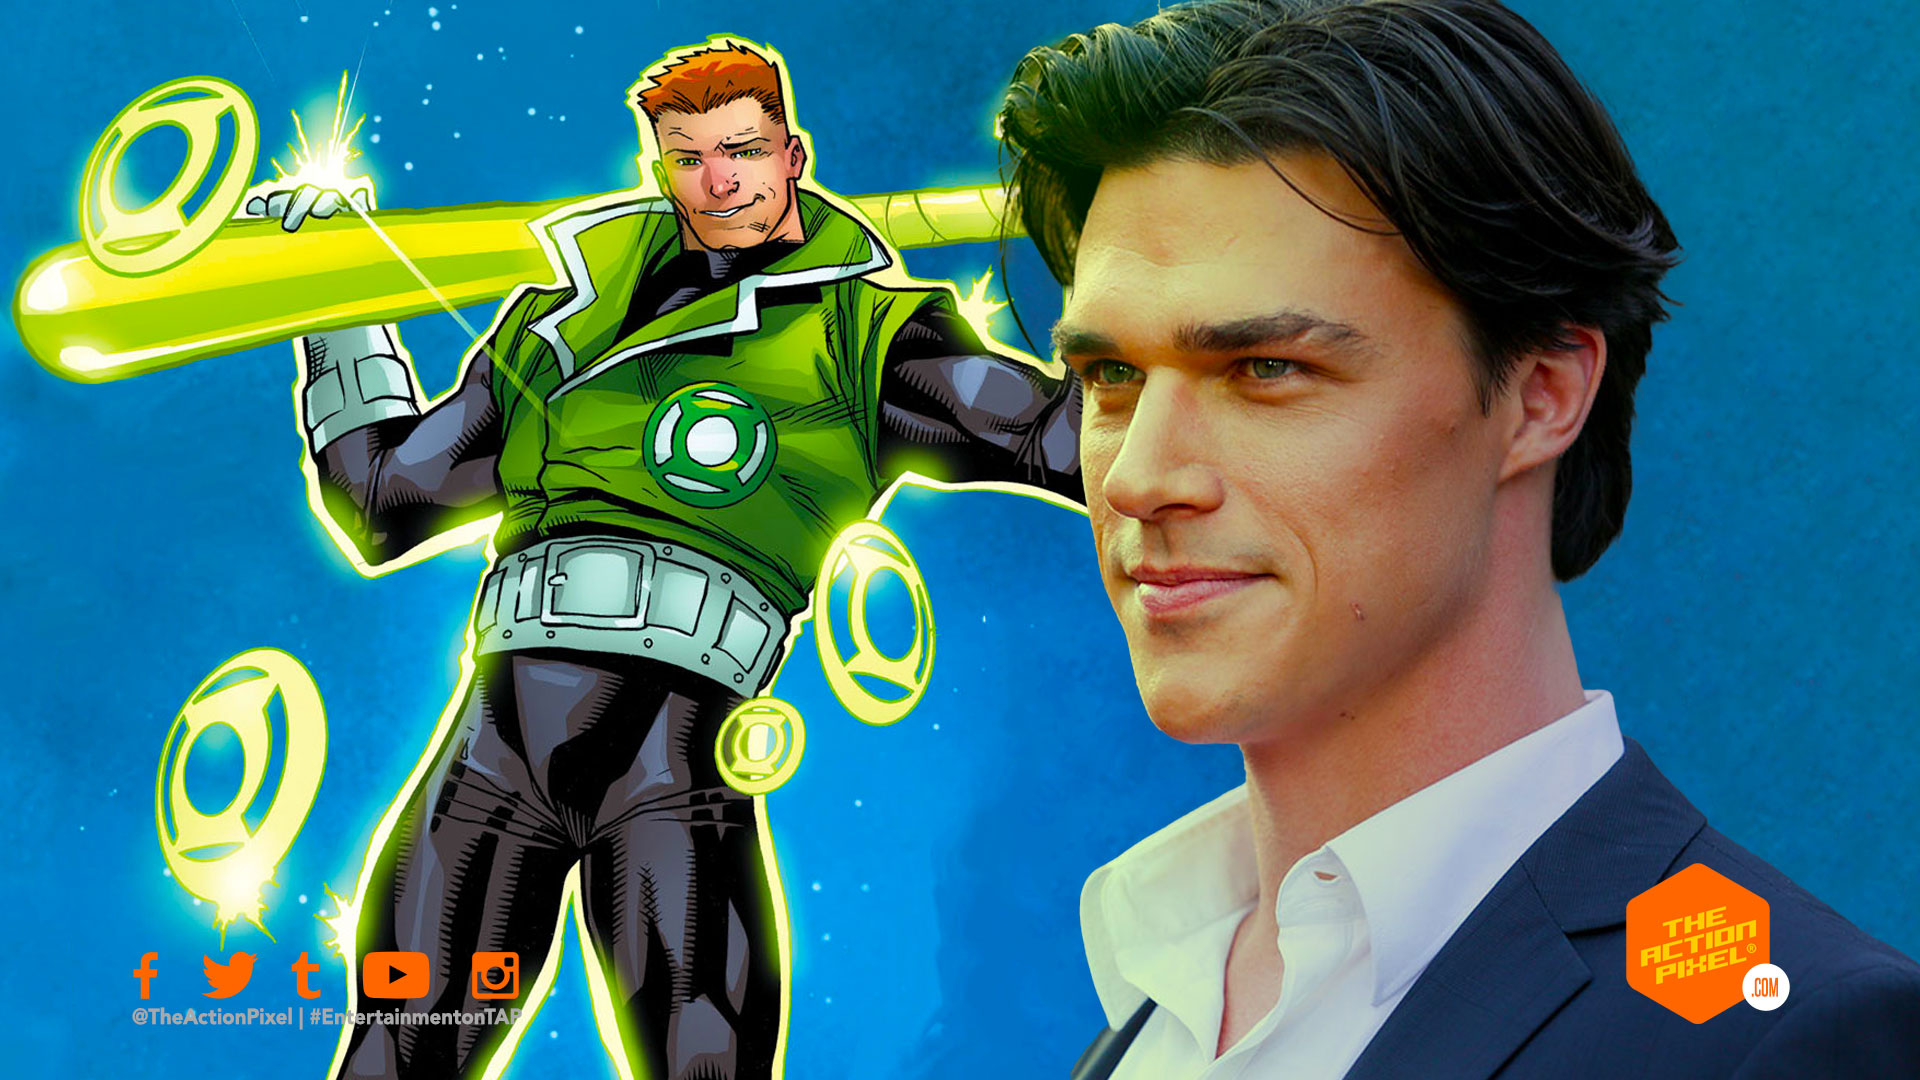 Finn Wittrock, guy gardner, the action pixel, entertainment on tap, the action pixel, hbo max, green lantern corps, green lantern corps tv series, featured,